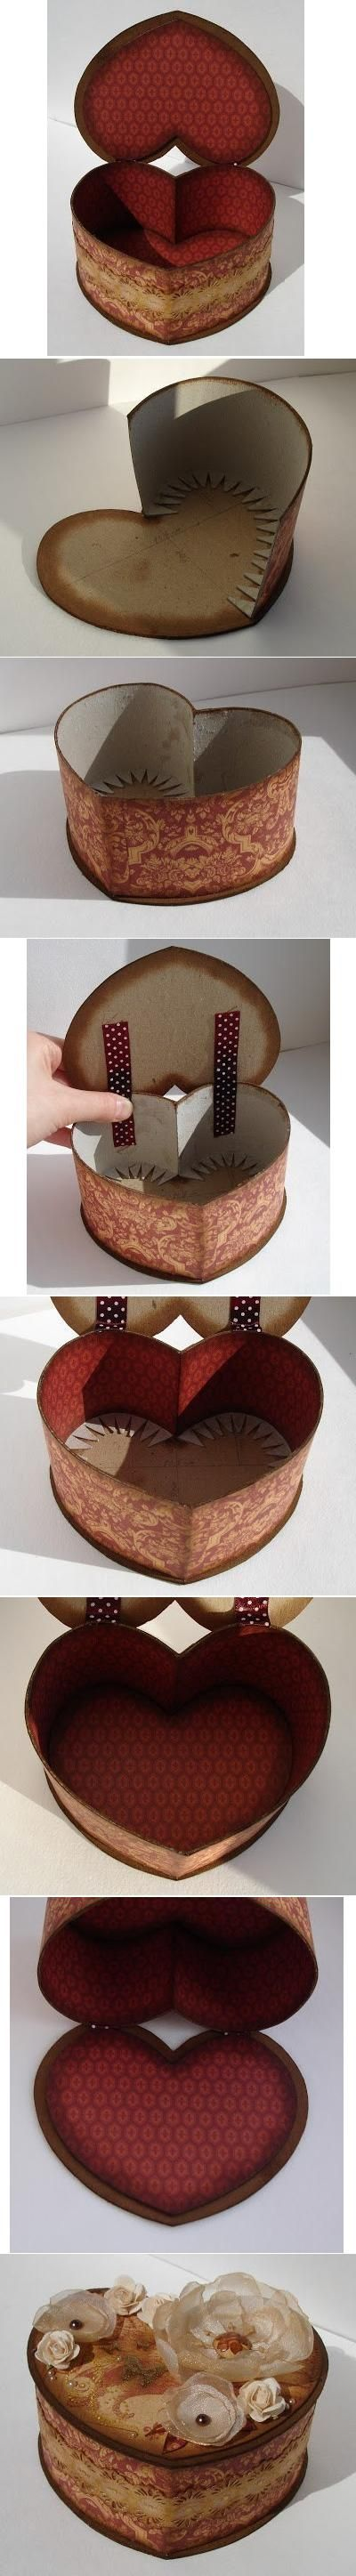 Cofre en forma de corazon con carton - DIY Cardboard Heart Shaped Box